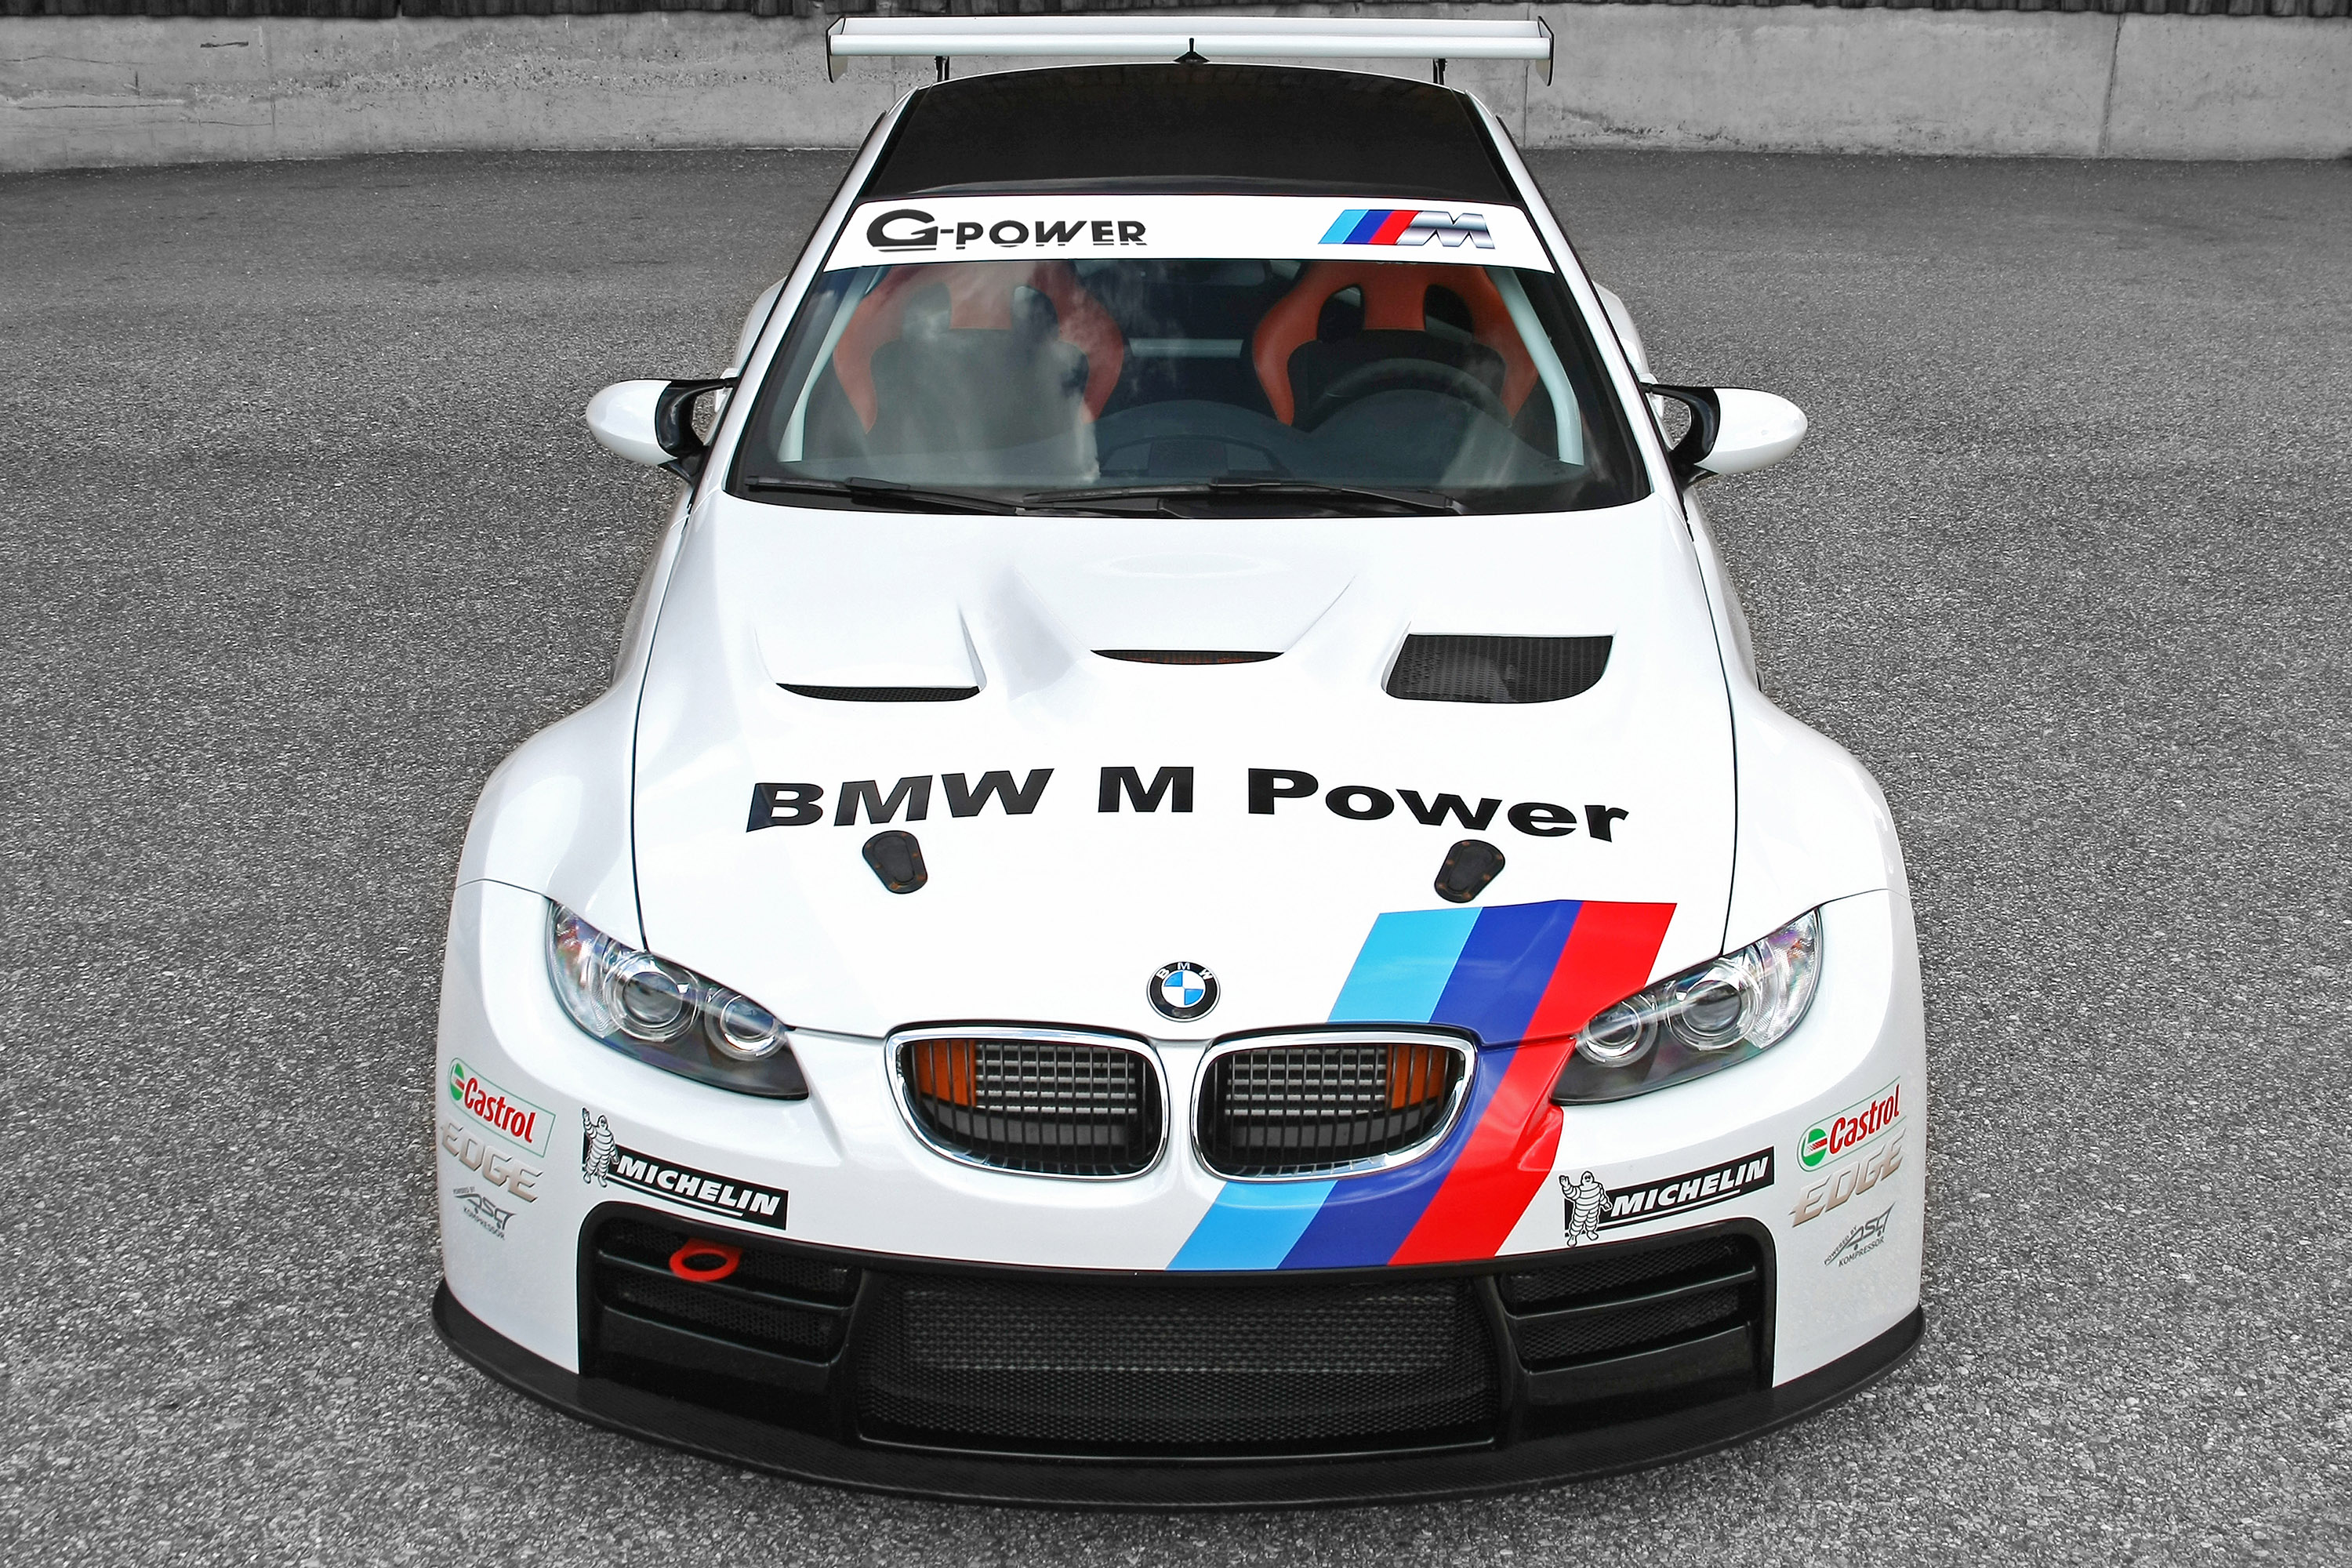 g power bmw e92 m3 gt2 r 720hp and 700nm. Black Bedroom Furniture Sets. Home Design Ideas